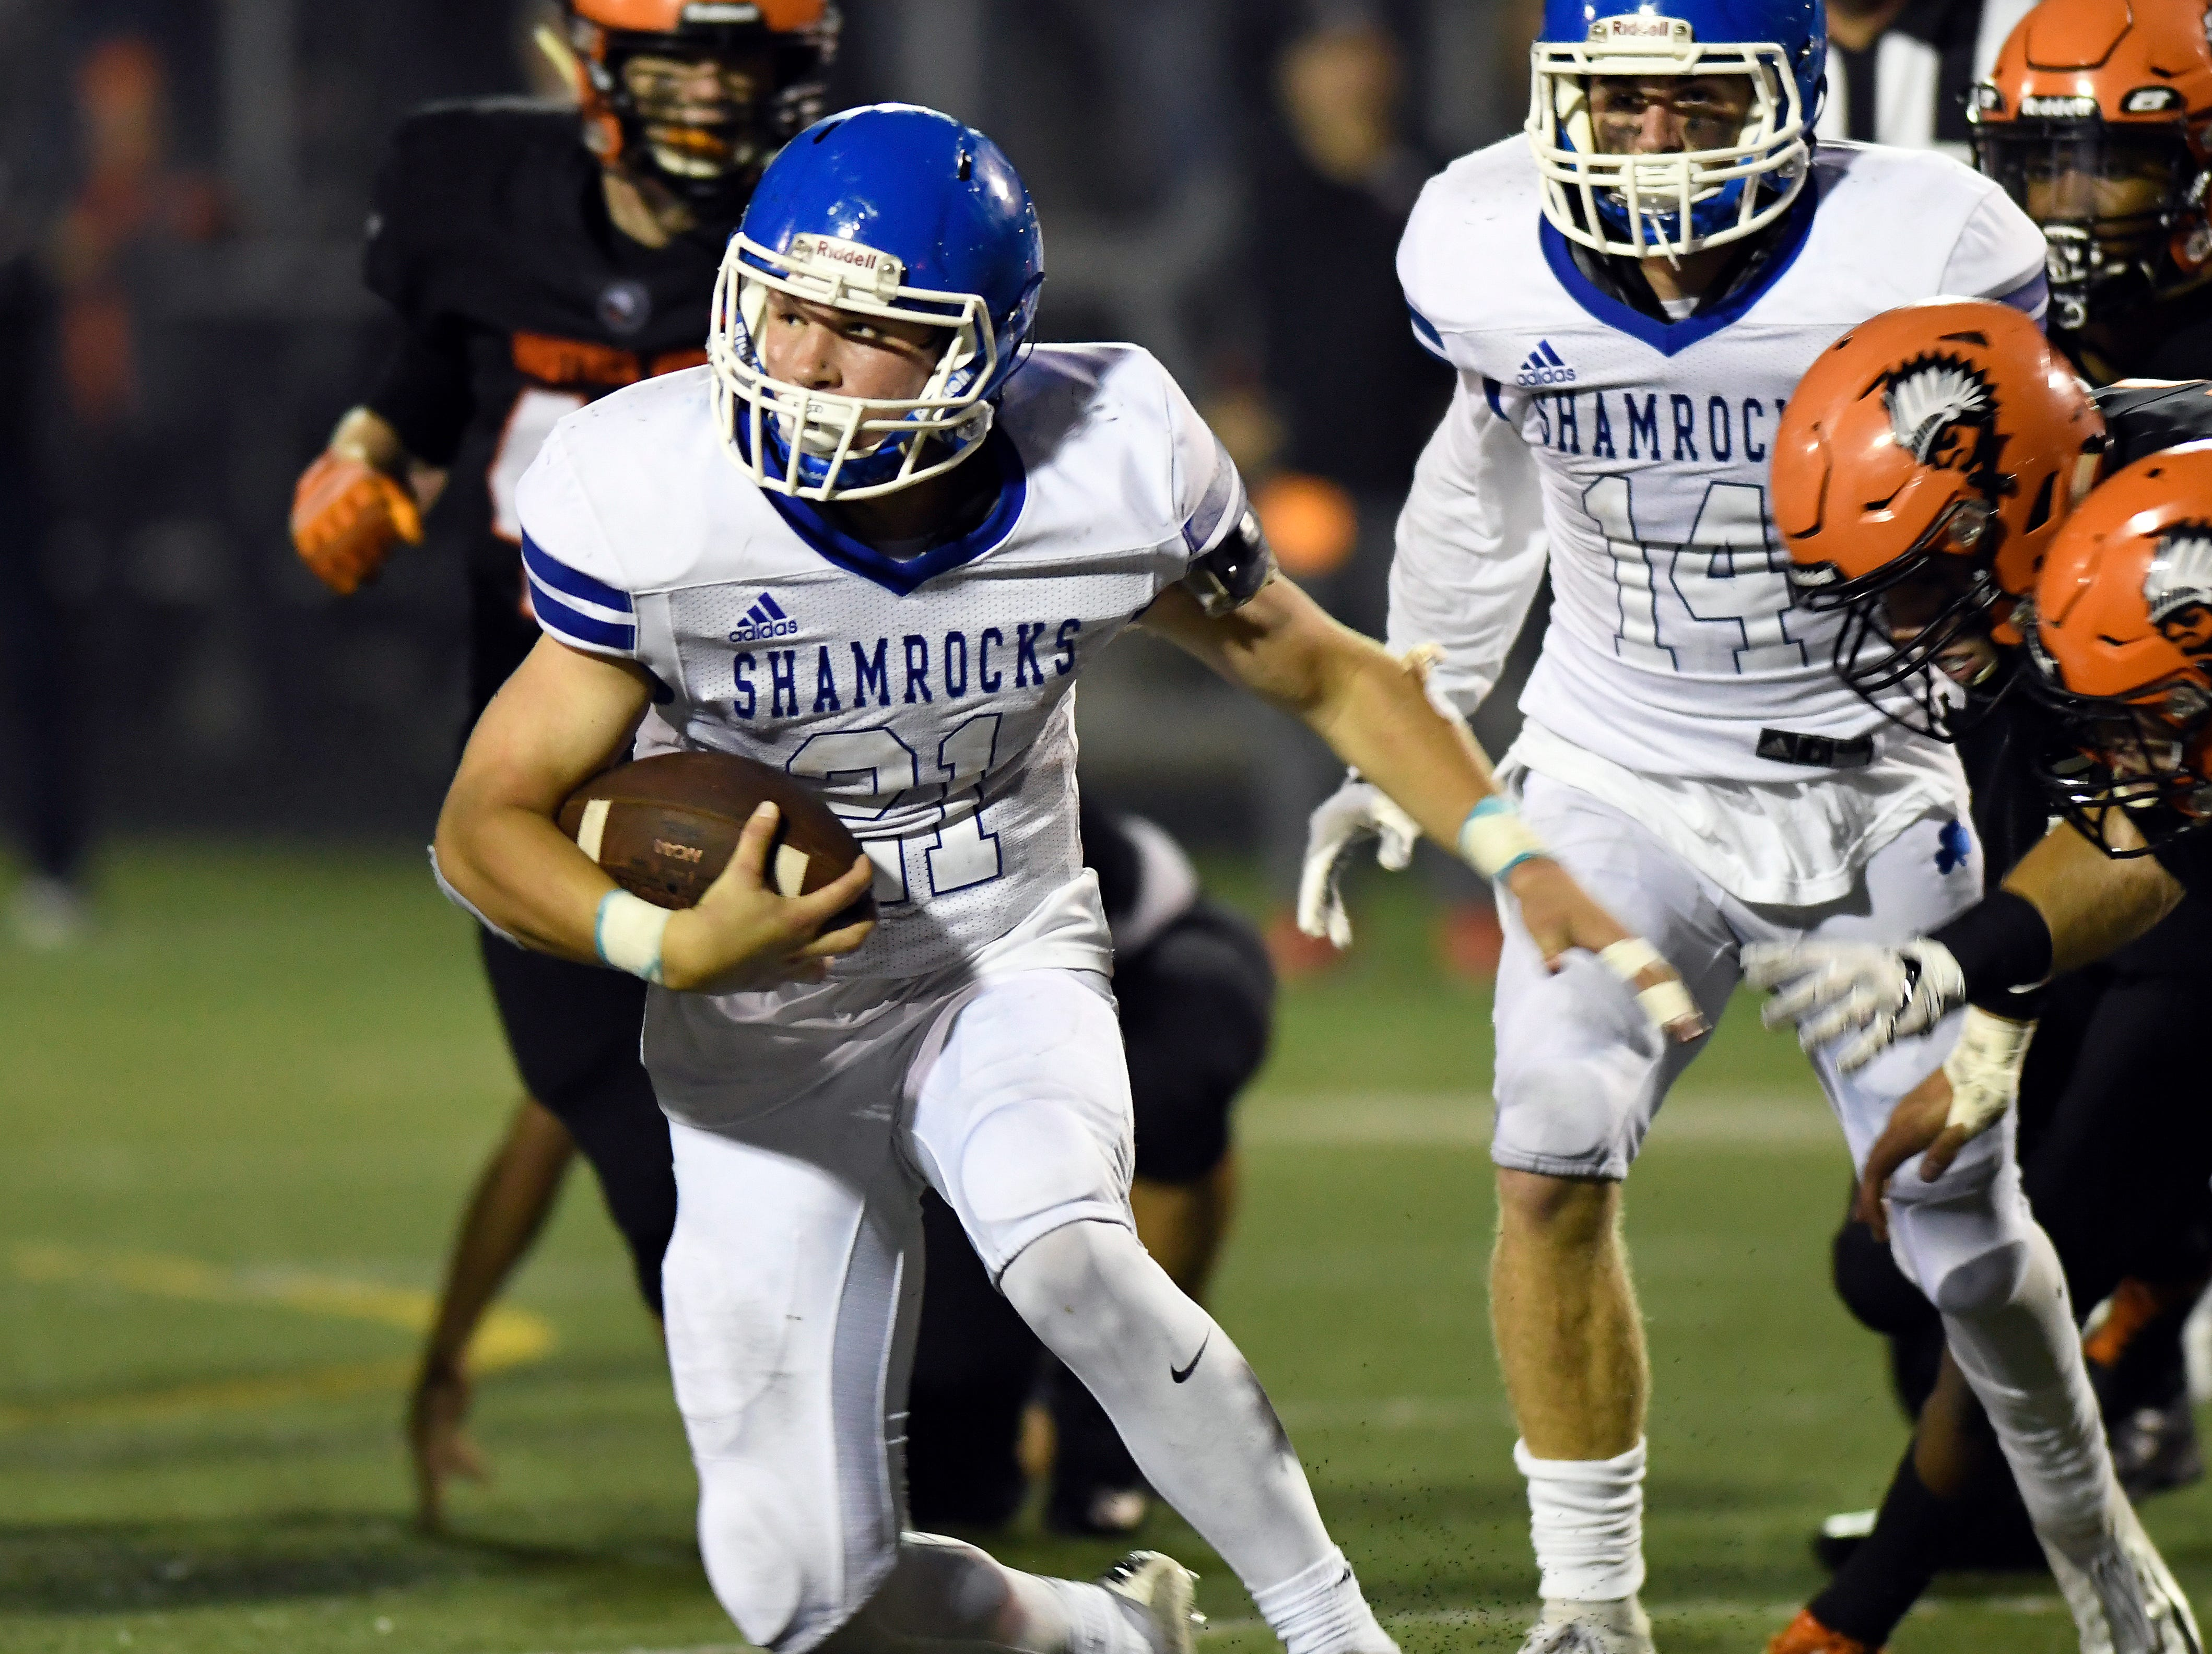 Detroit Catholic Central running back Keegan Koehler (21) rushes for yardage against Birmingham Brother Rice in the fourth quarter, Saturday, Sept. 22, 2018 at Hurley Field in Berkley, Mich.  Catholic Central defeated Brother Rice, 21-0.